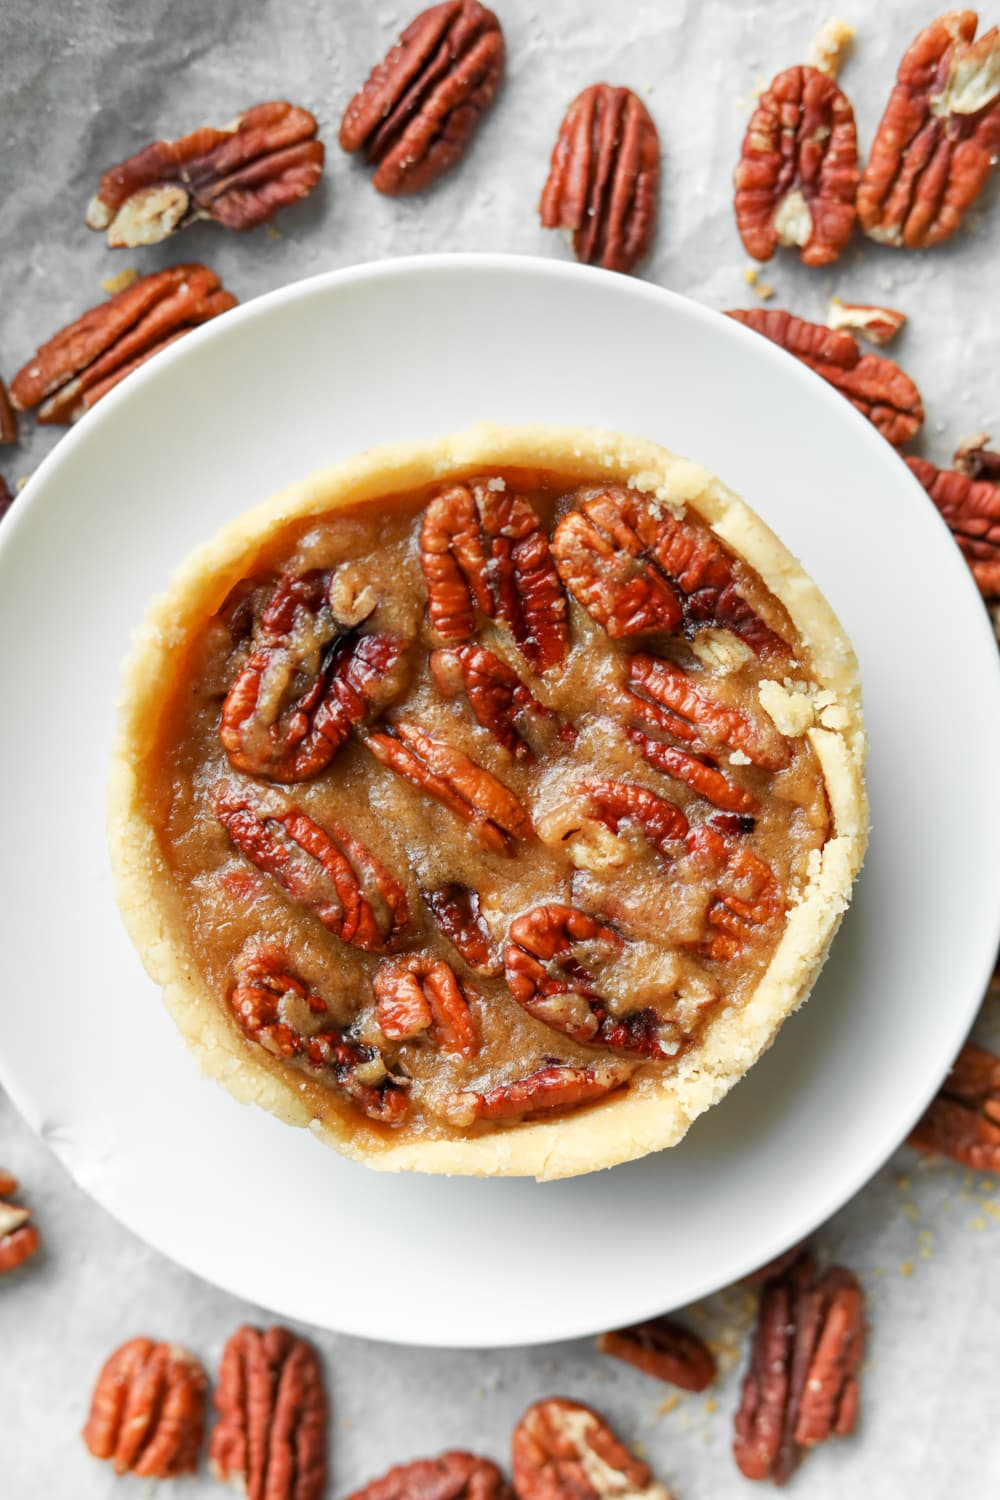 Pecan pie on a white plate.